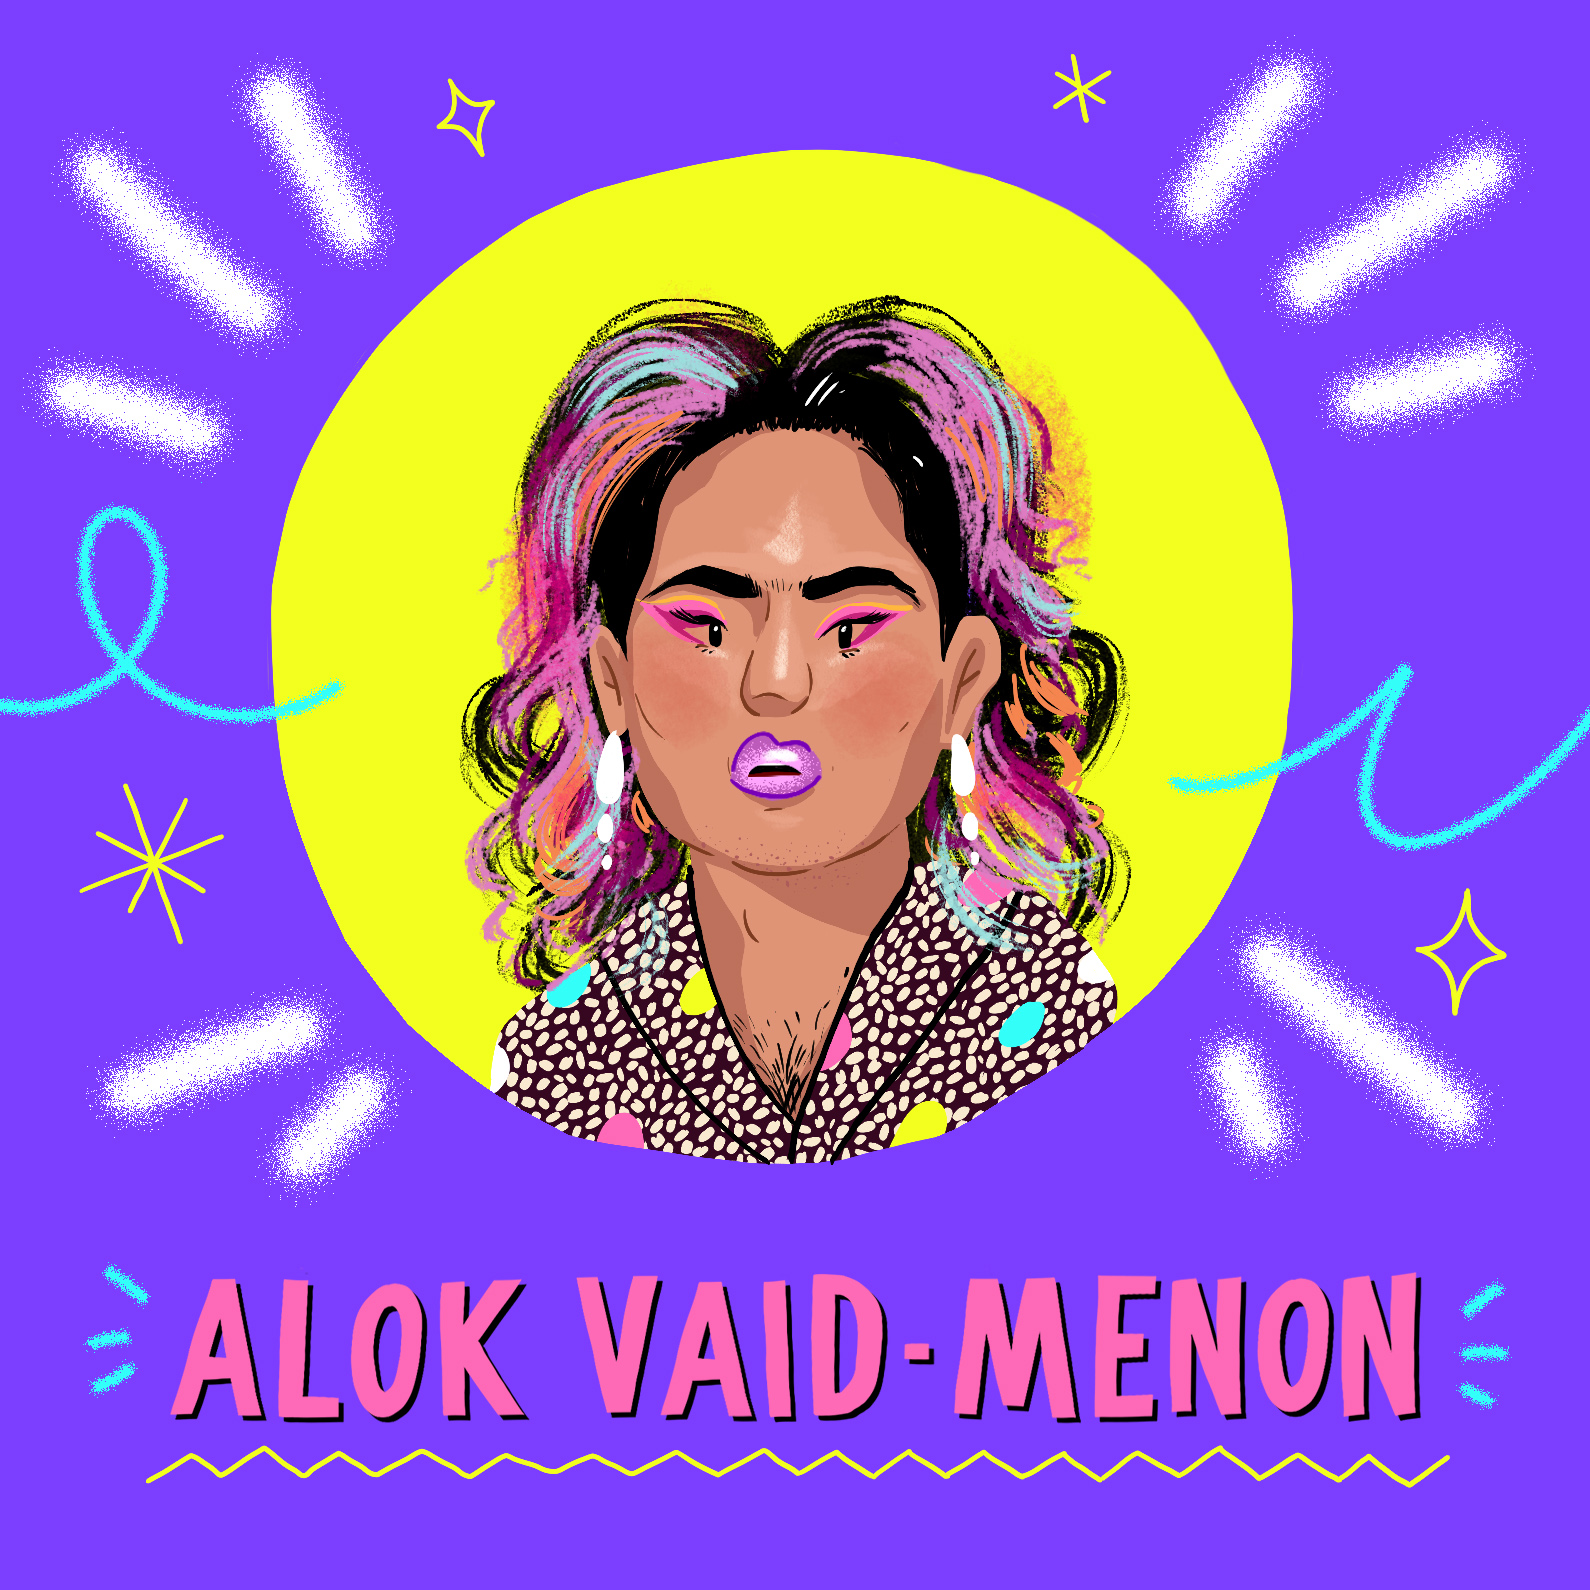 Alok Menon illustrated by Harry infront of a purple background in a yellow circle